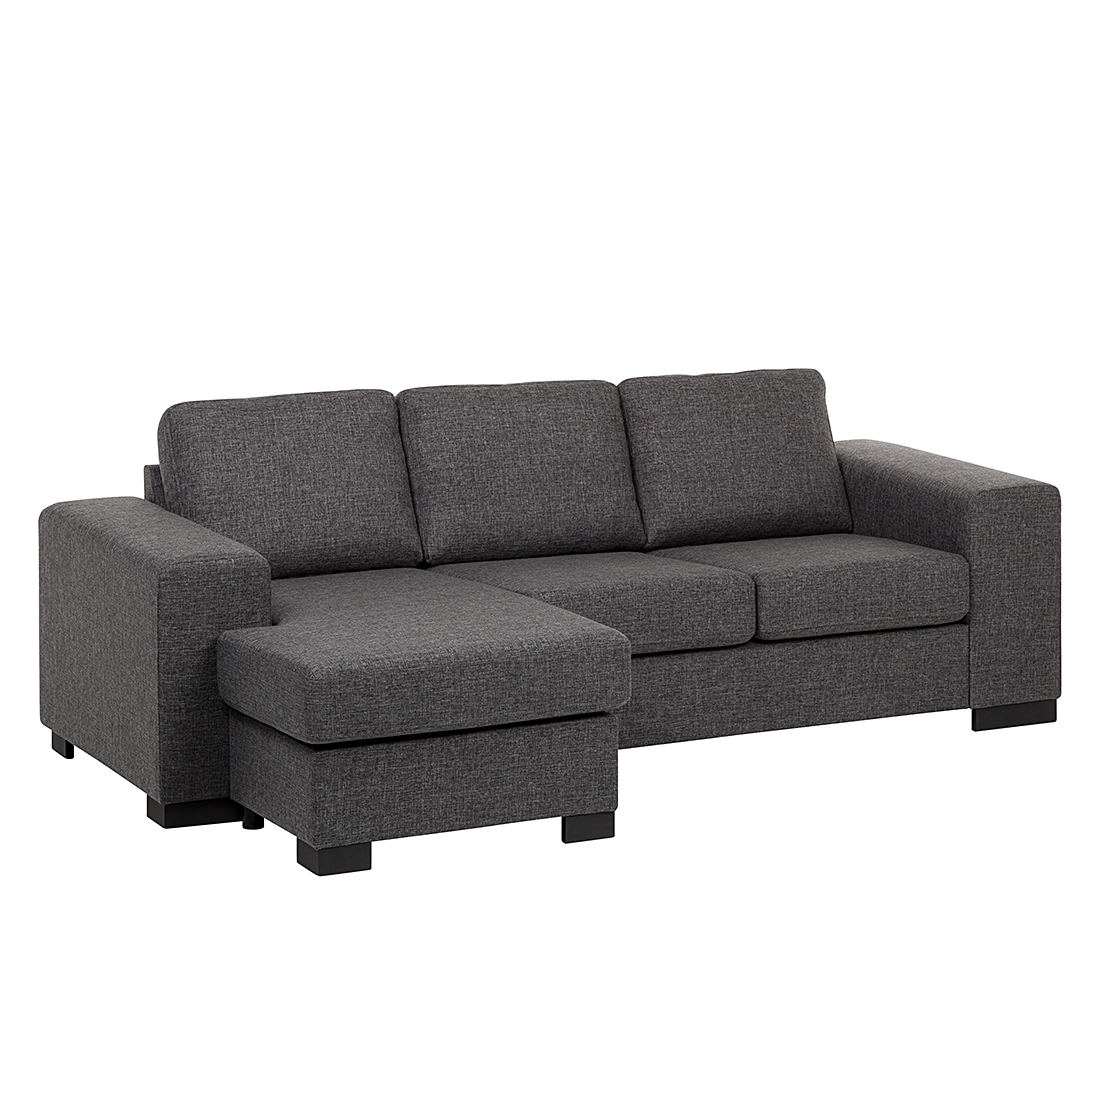 ecksofa strukturstoff grau schlafsofa couch sofa schlafcouch g stecouch neu ebay. Black Bedroom Furniture Sets. Home Design Ideas